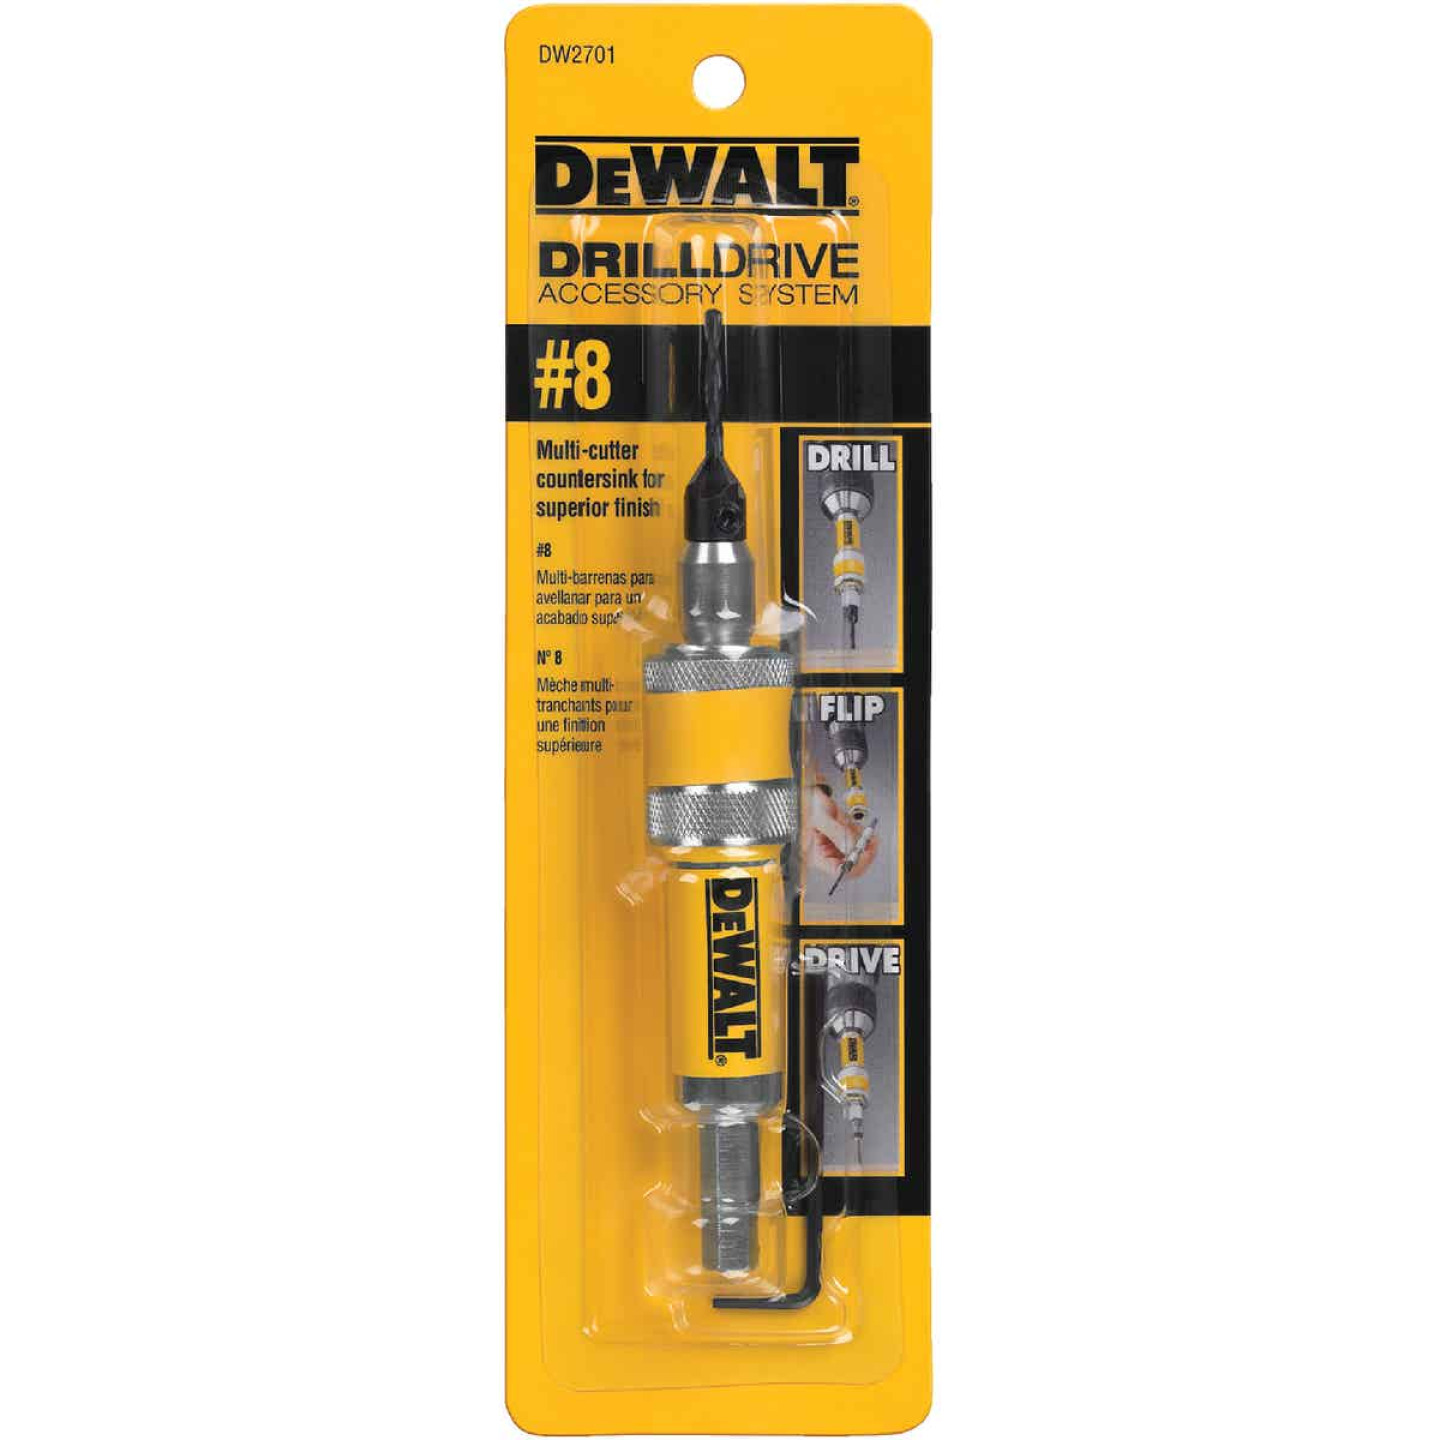 DeWalt #8 1/4 In. Black Oxide Drill & Drive Unit Image 1